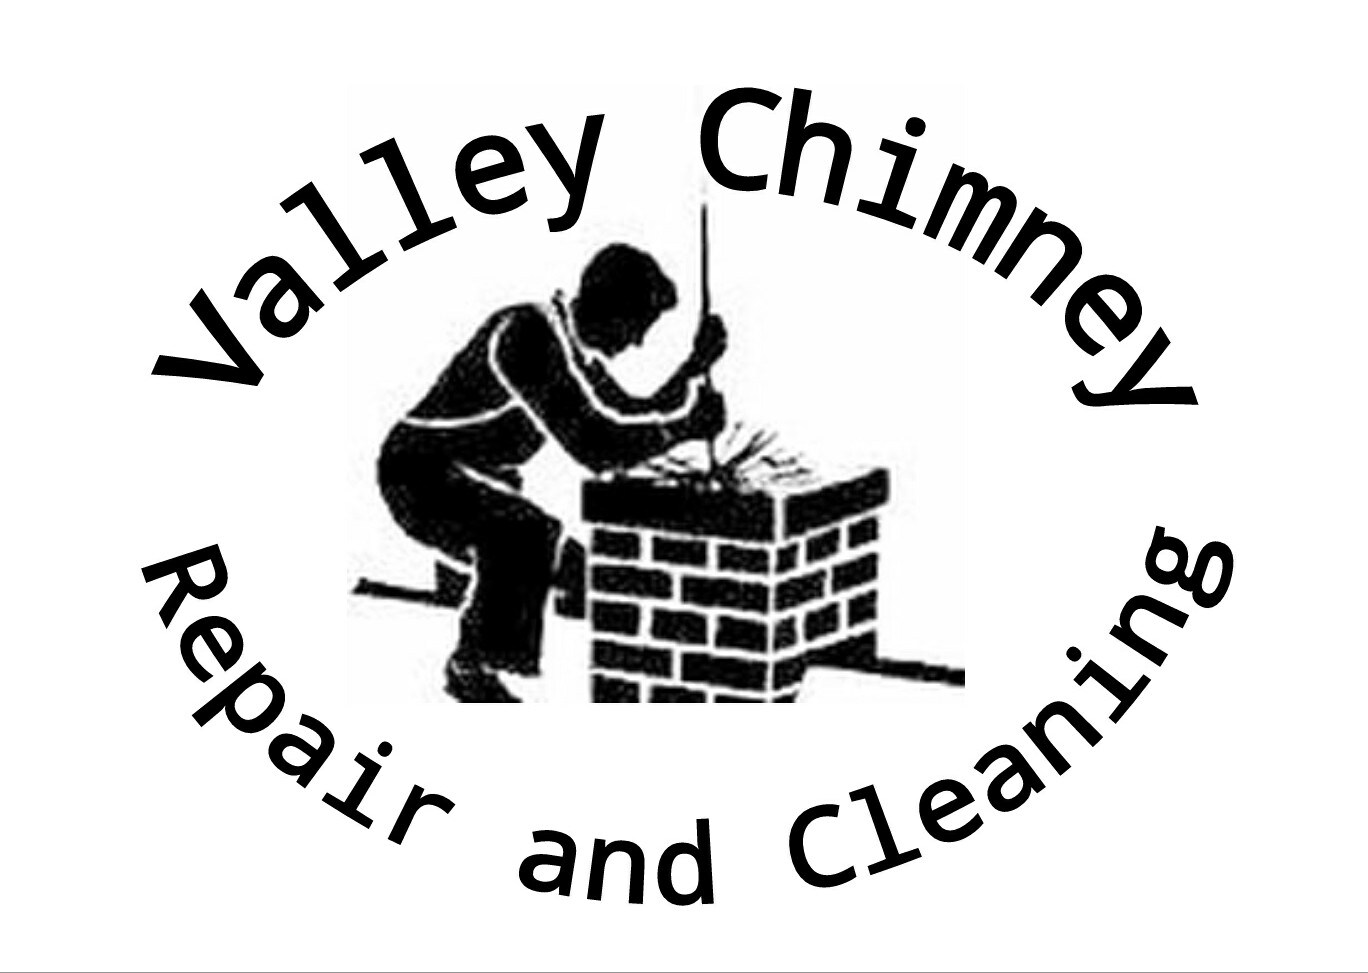 Valley Chimney Repair and Cleaning